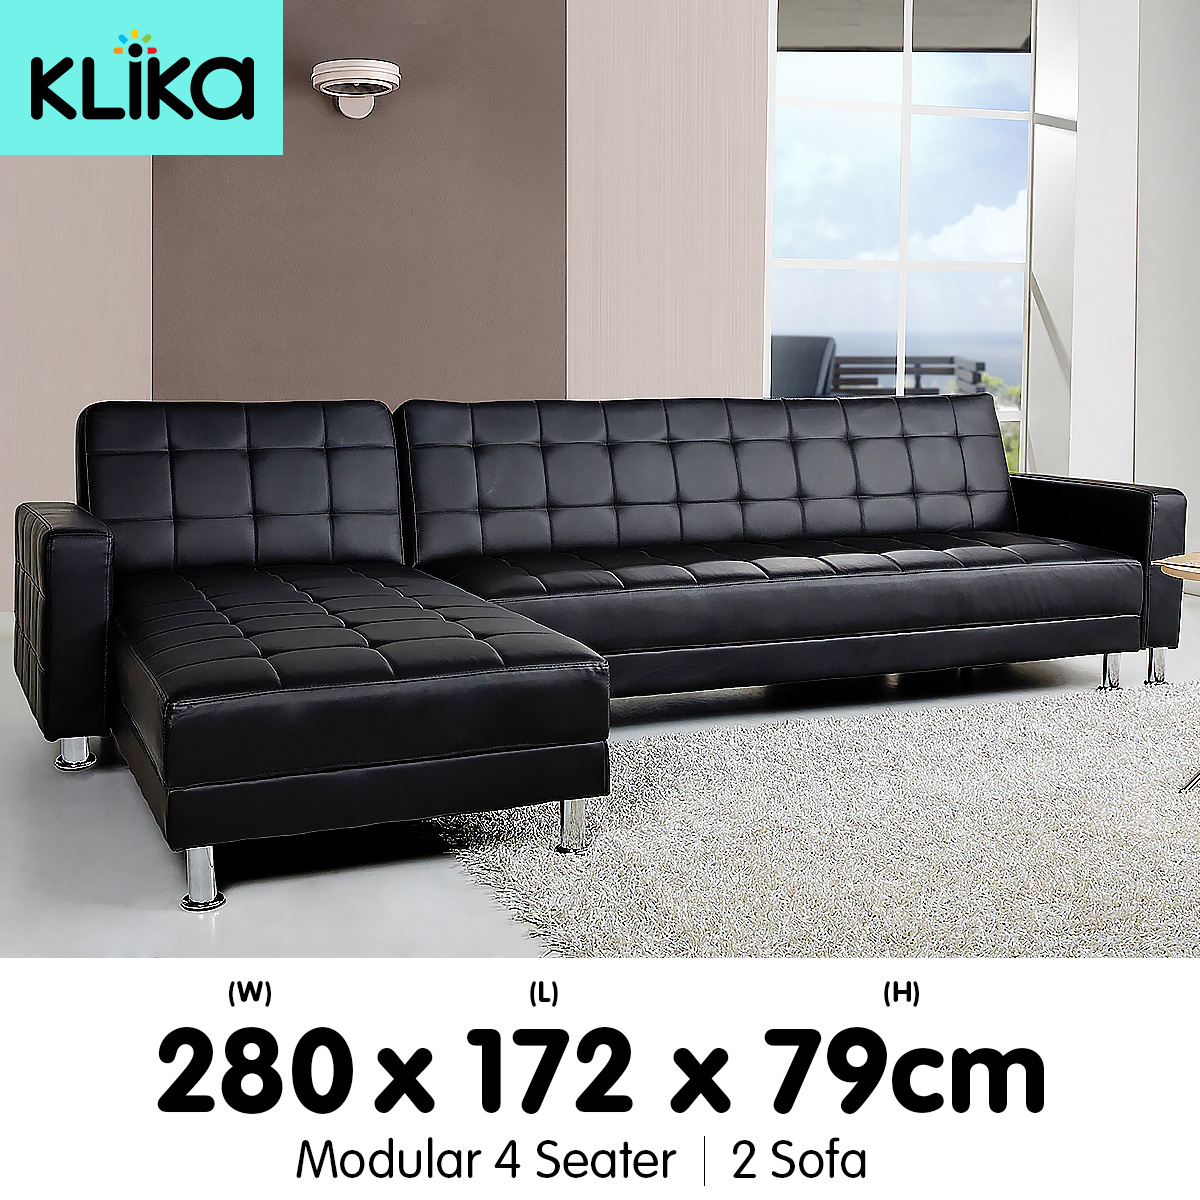 antwerp chaise sofa bed lounge furniture leicester corner couch modular home pu